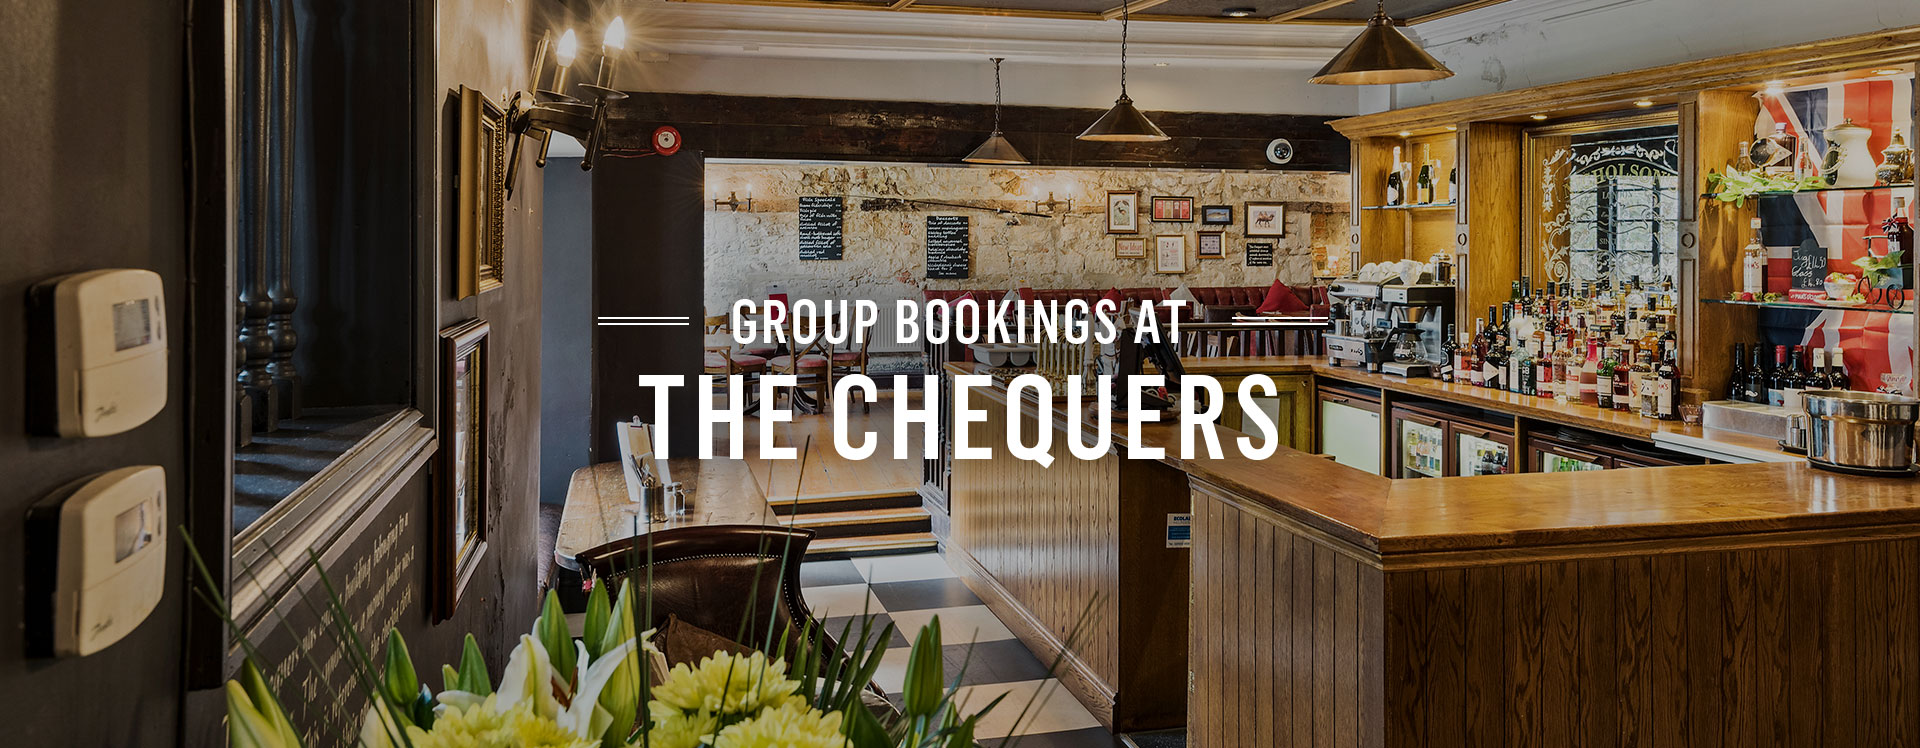 Group Bookings at The Chequers